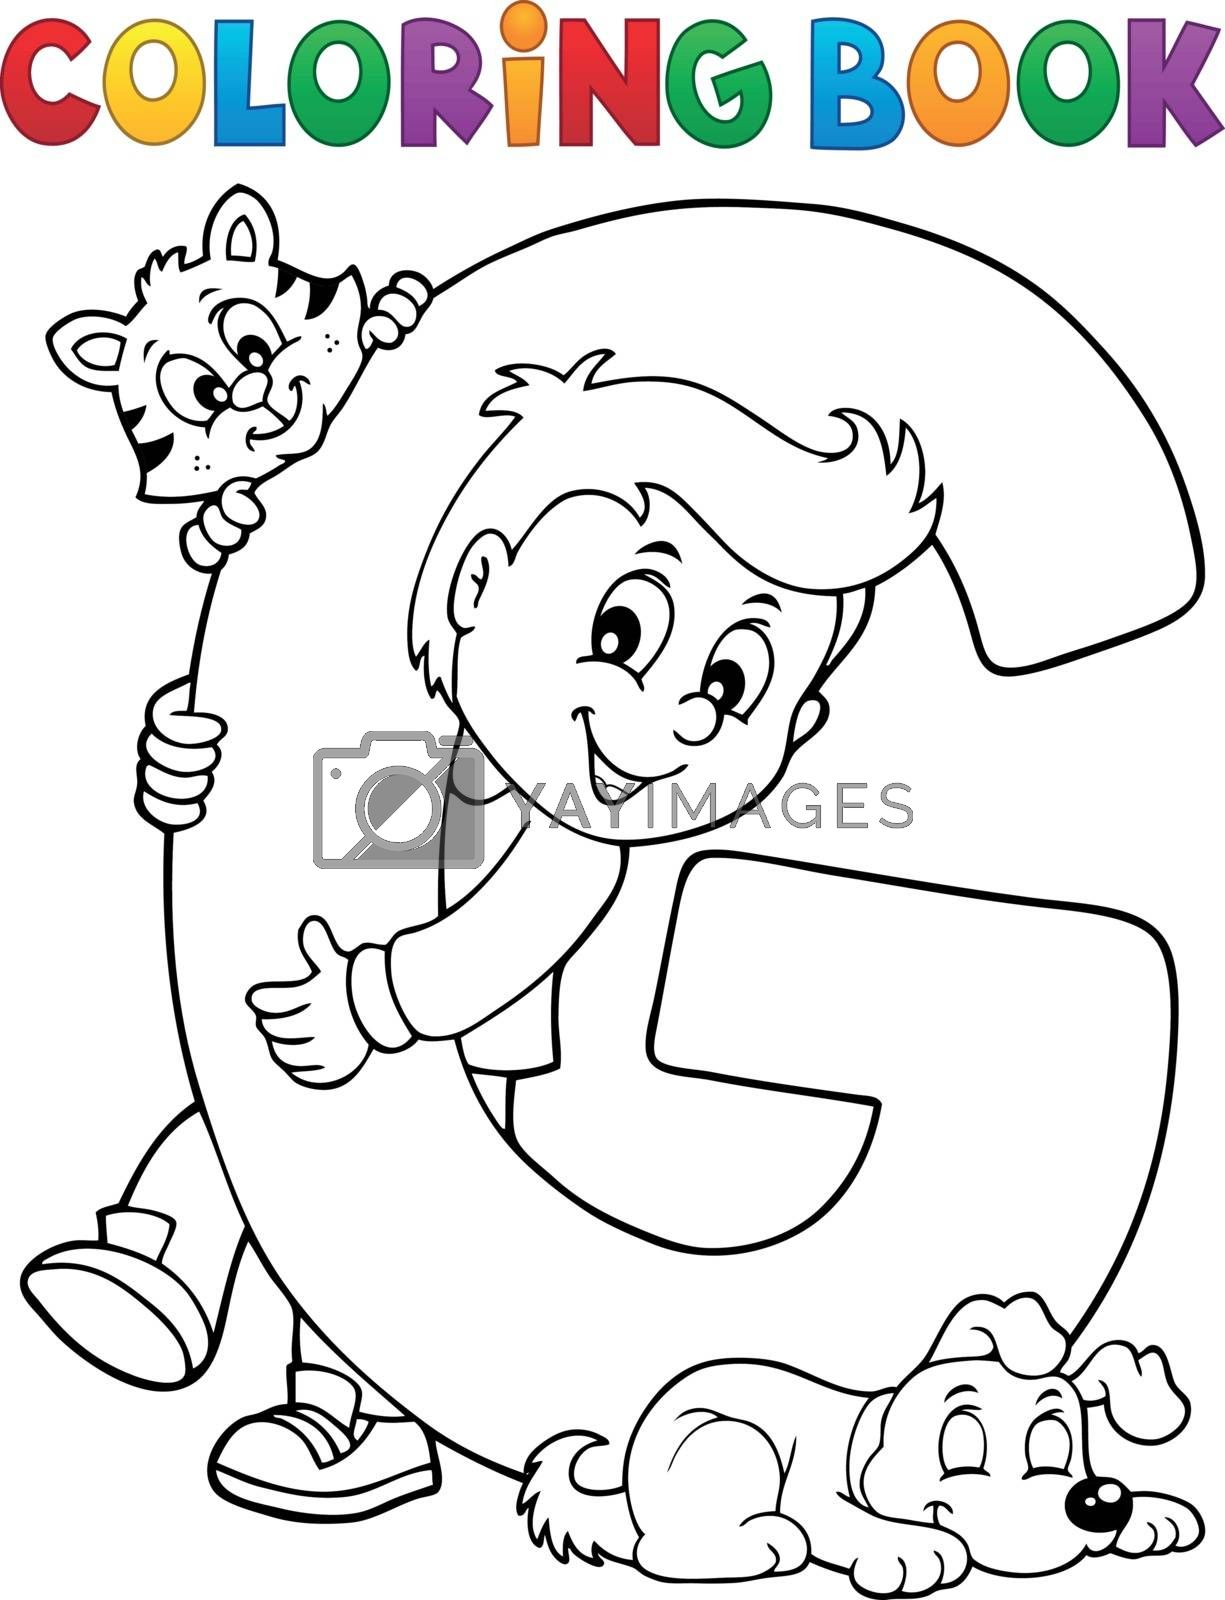 Coloring book boy and pets by letter G - eps10 vector illustration.